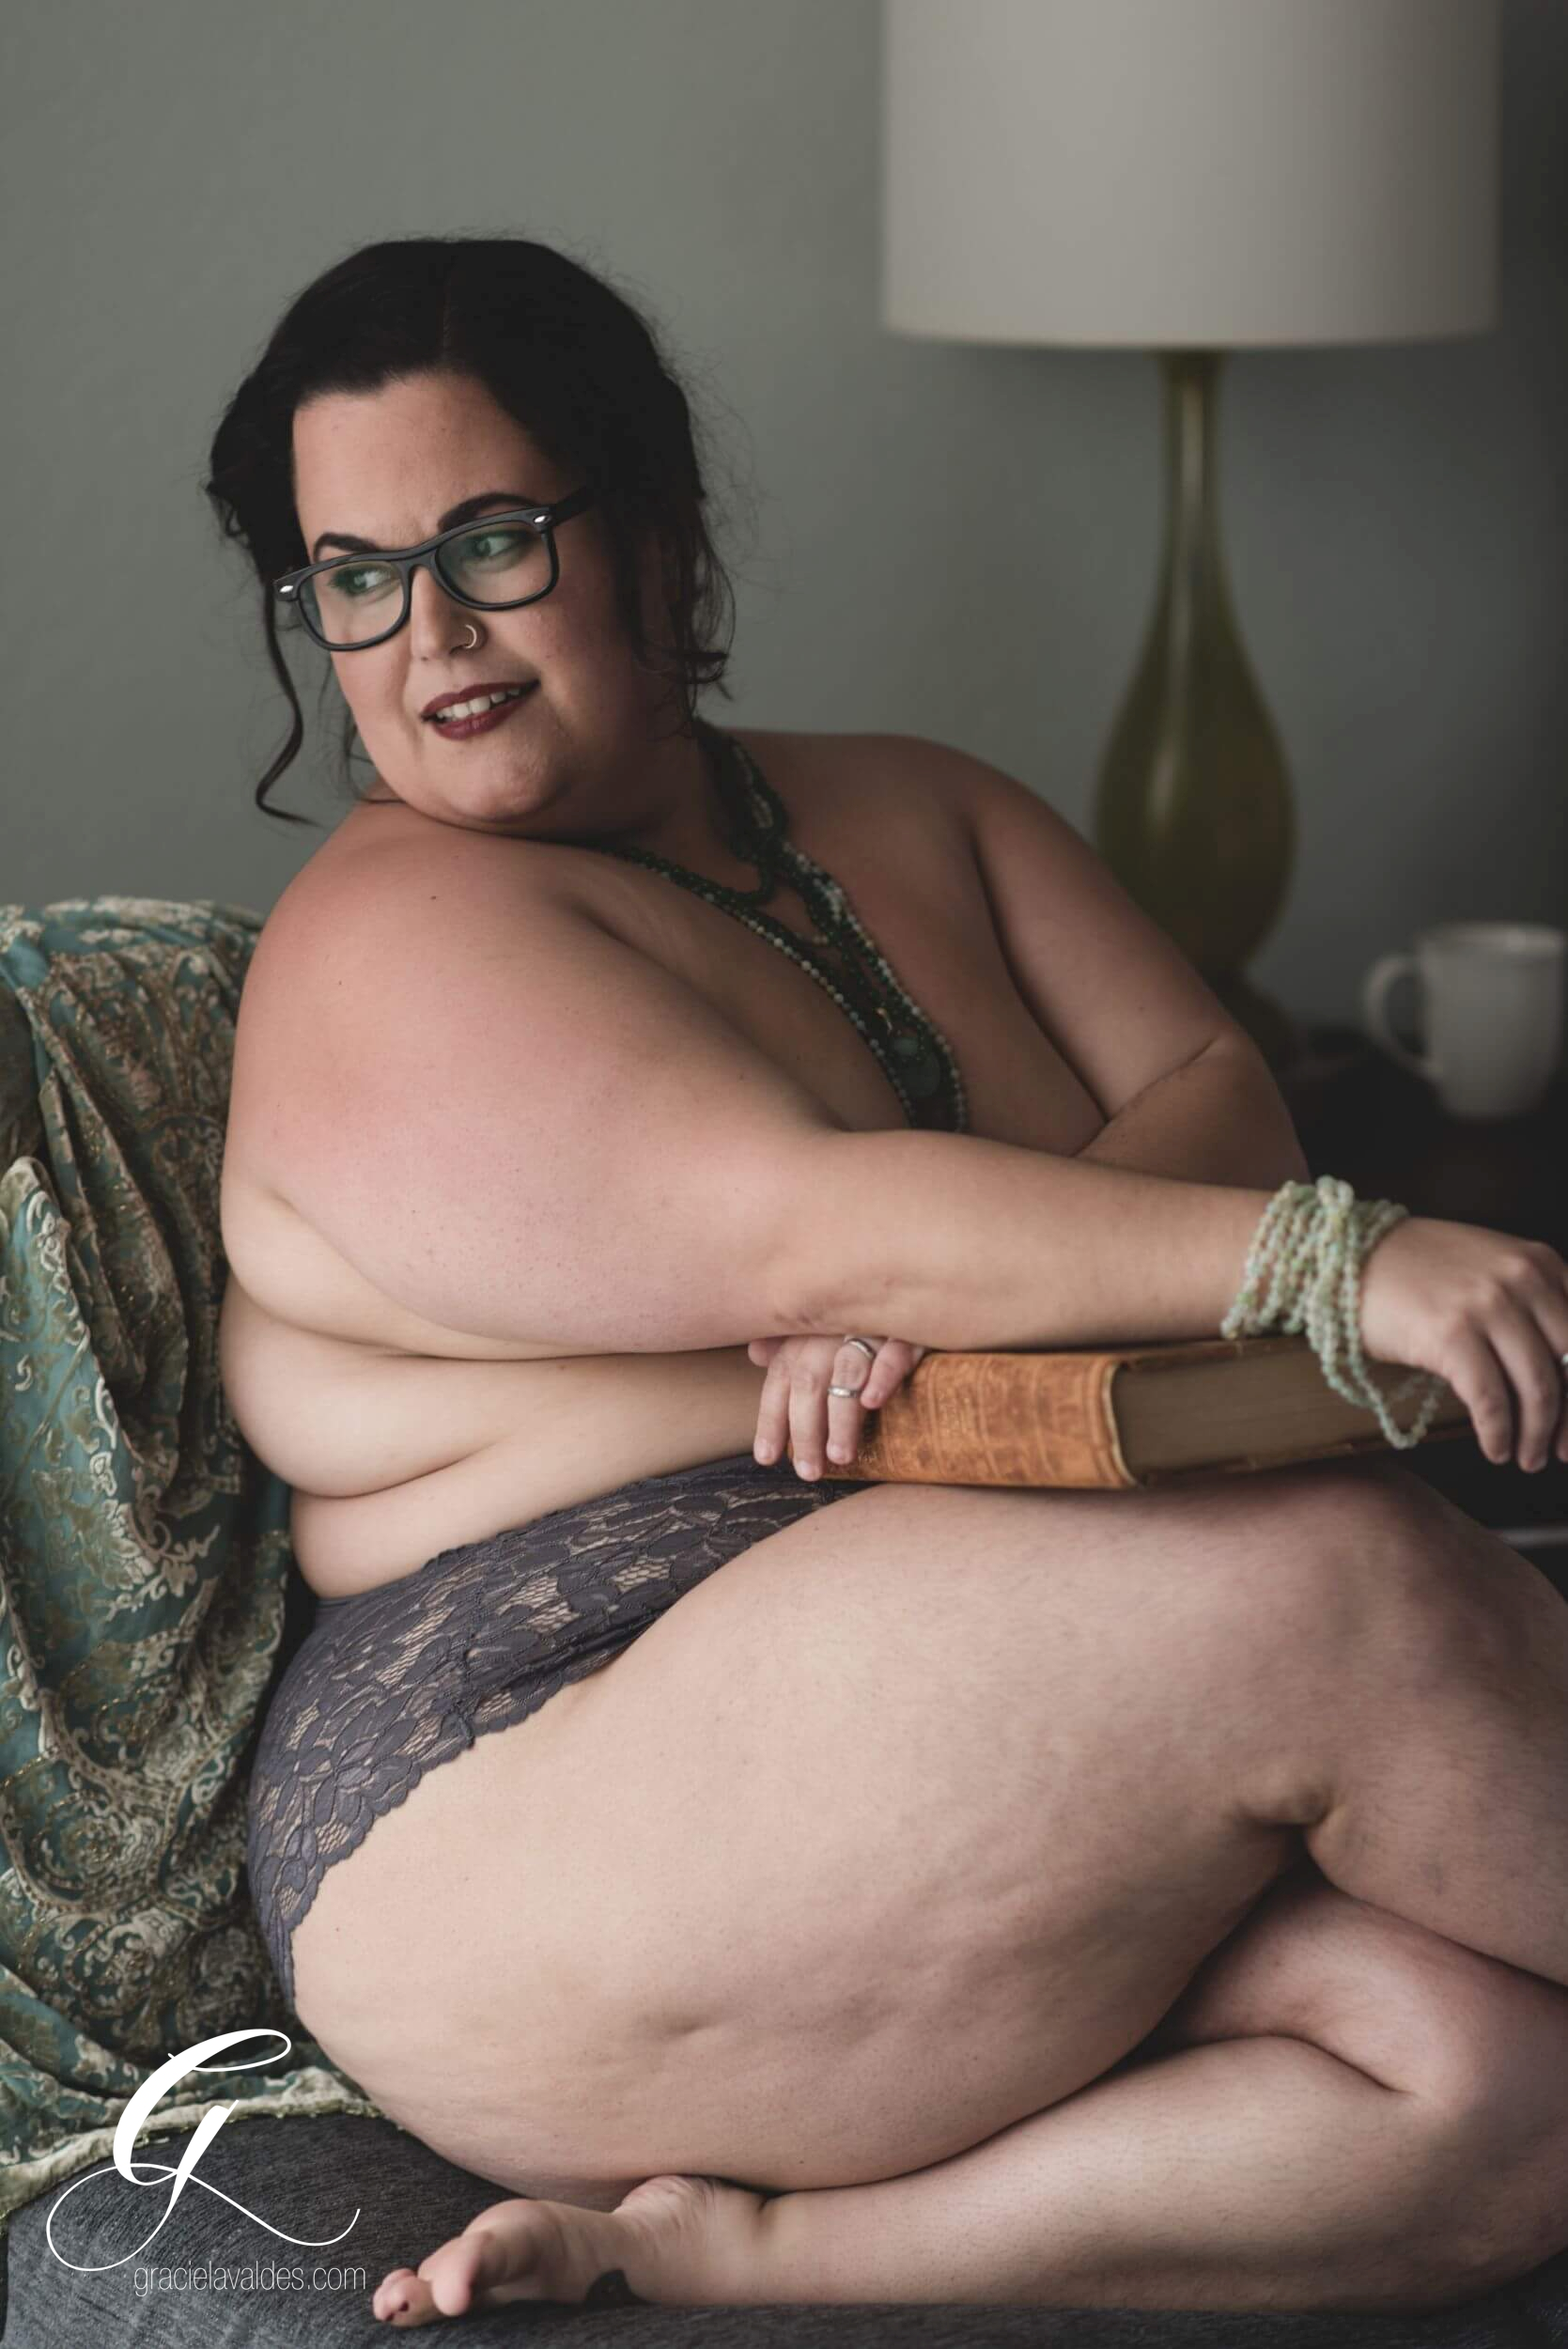 Genderqueer Boudoir Disabled Boudoir by Graciela Valdes 18.jpg